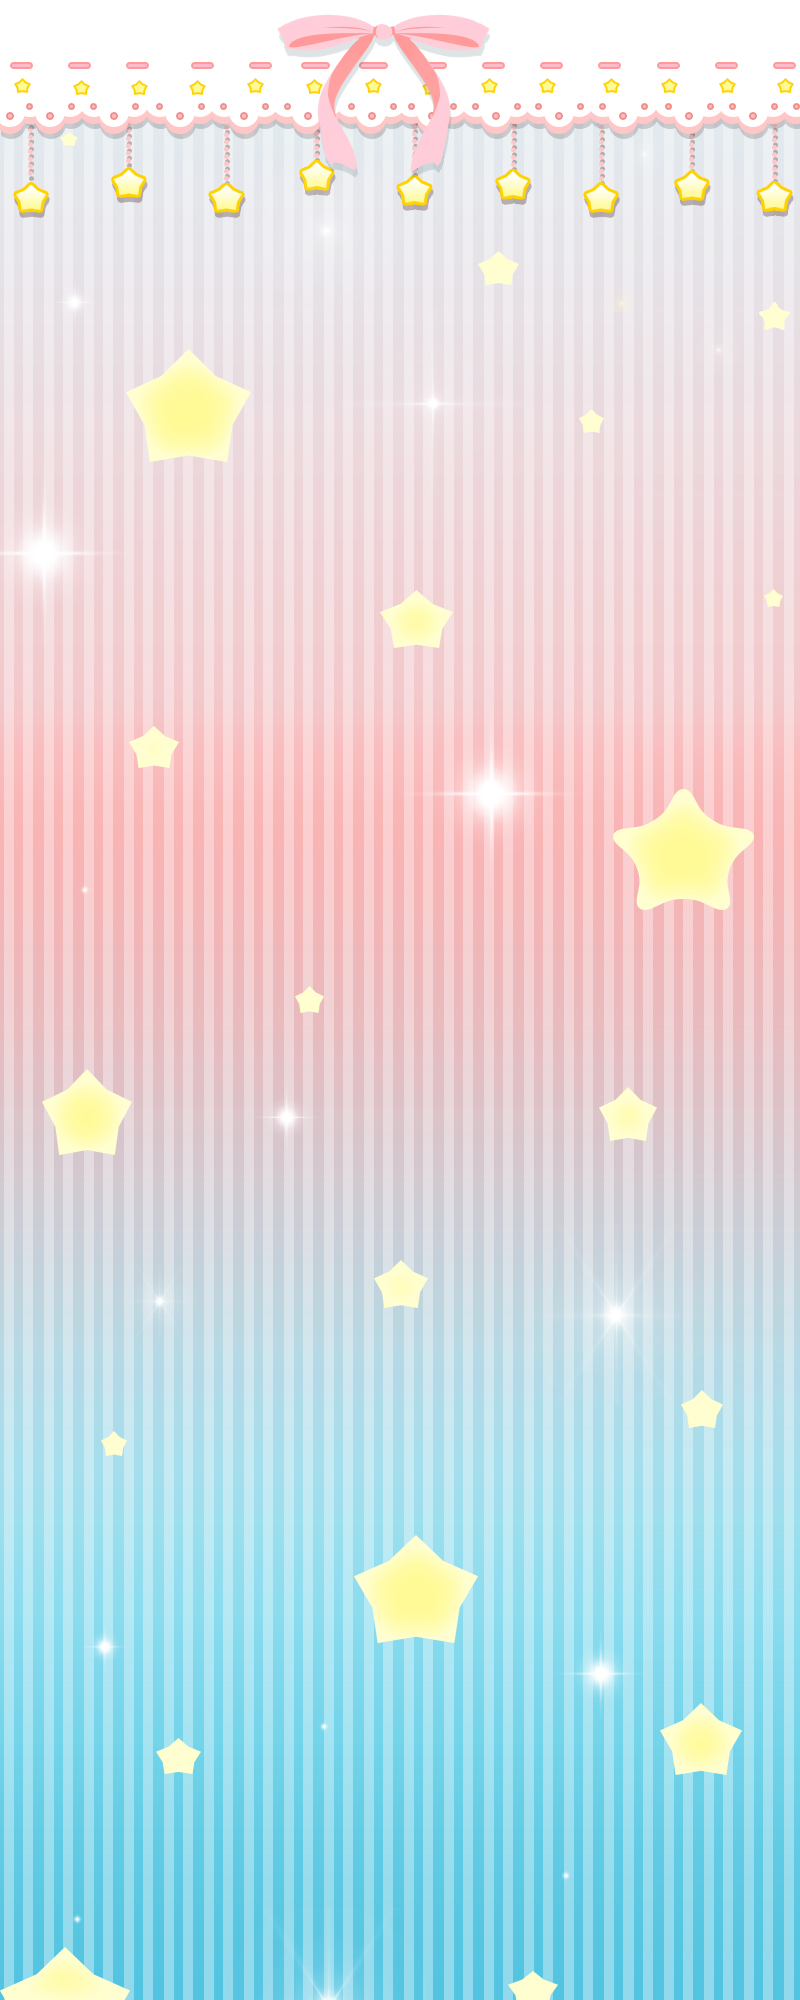 Cute background for tumblr